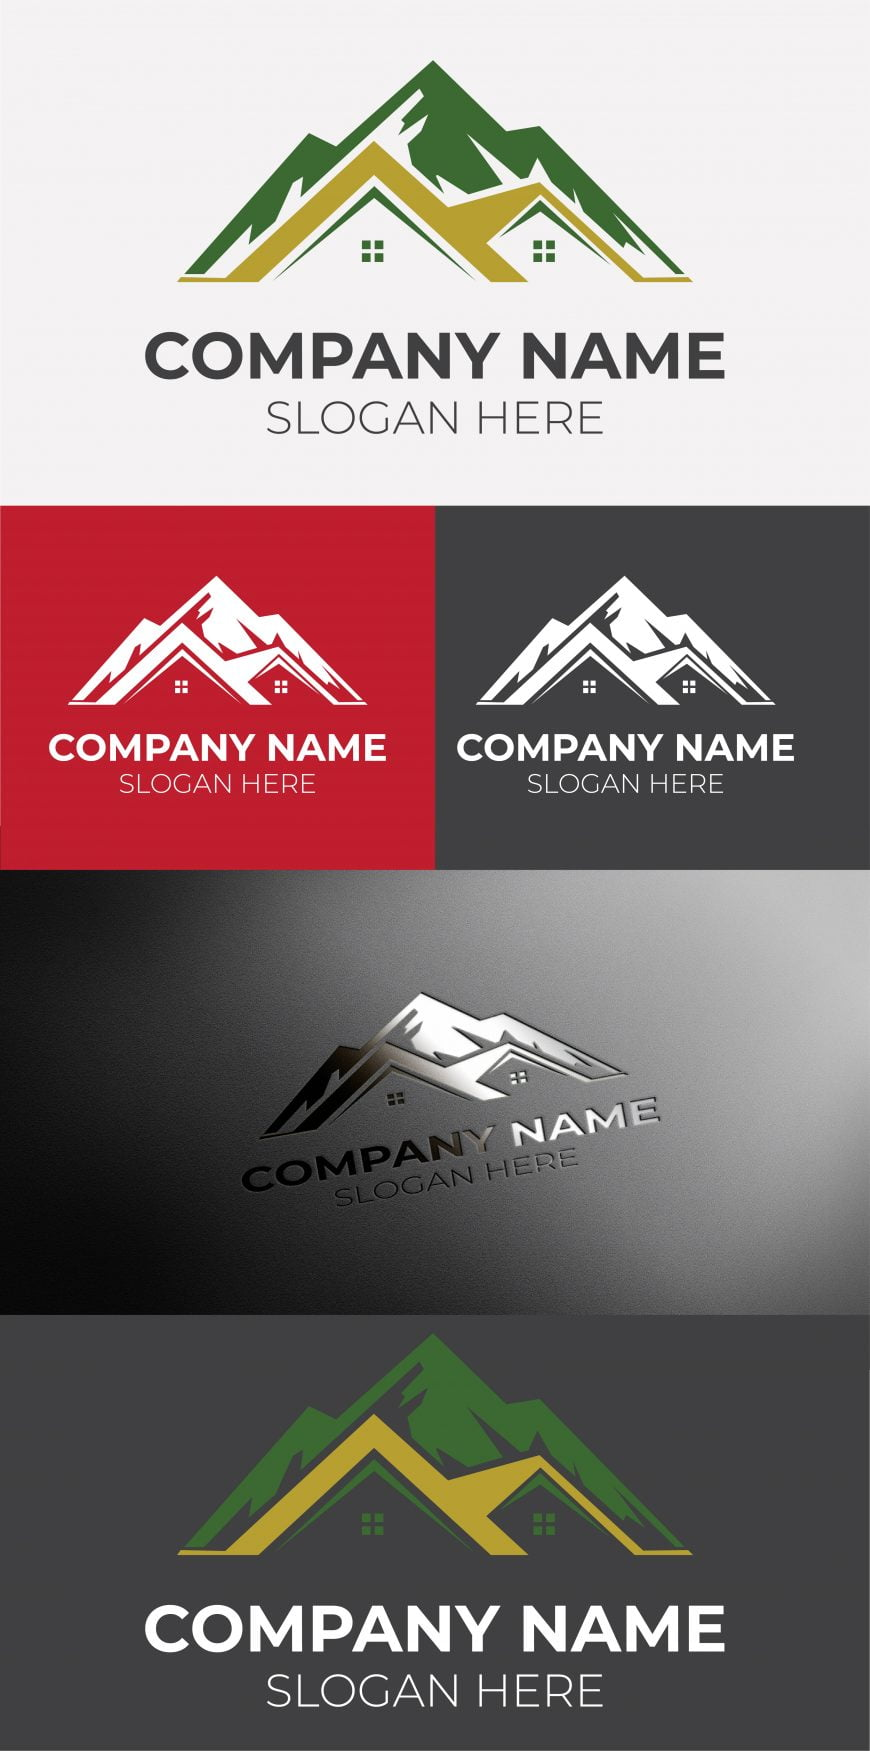 MOUNTAIN-LOGO-FREE-VECTOR-TEMPLATE-scaled